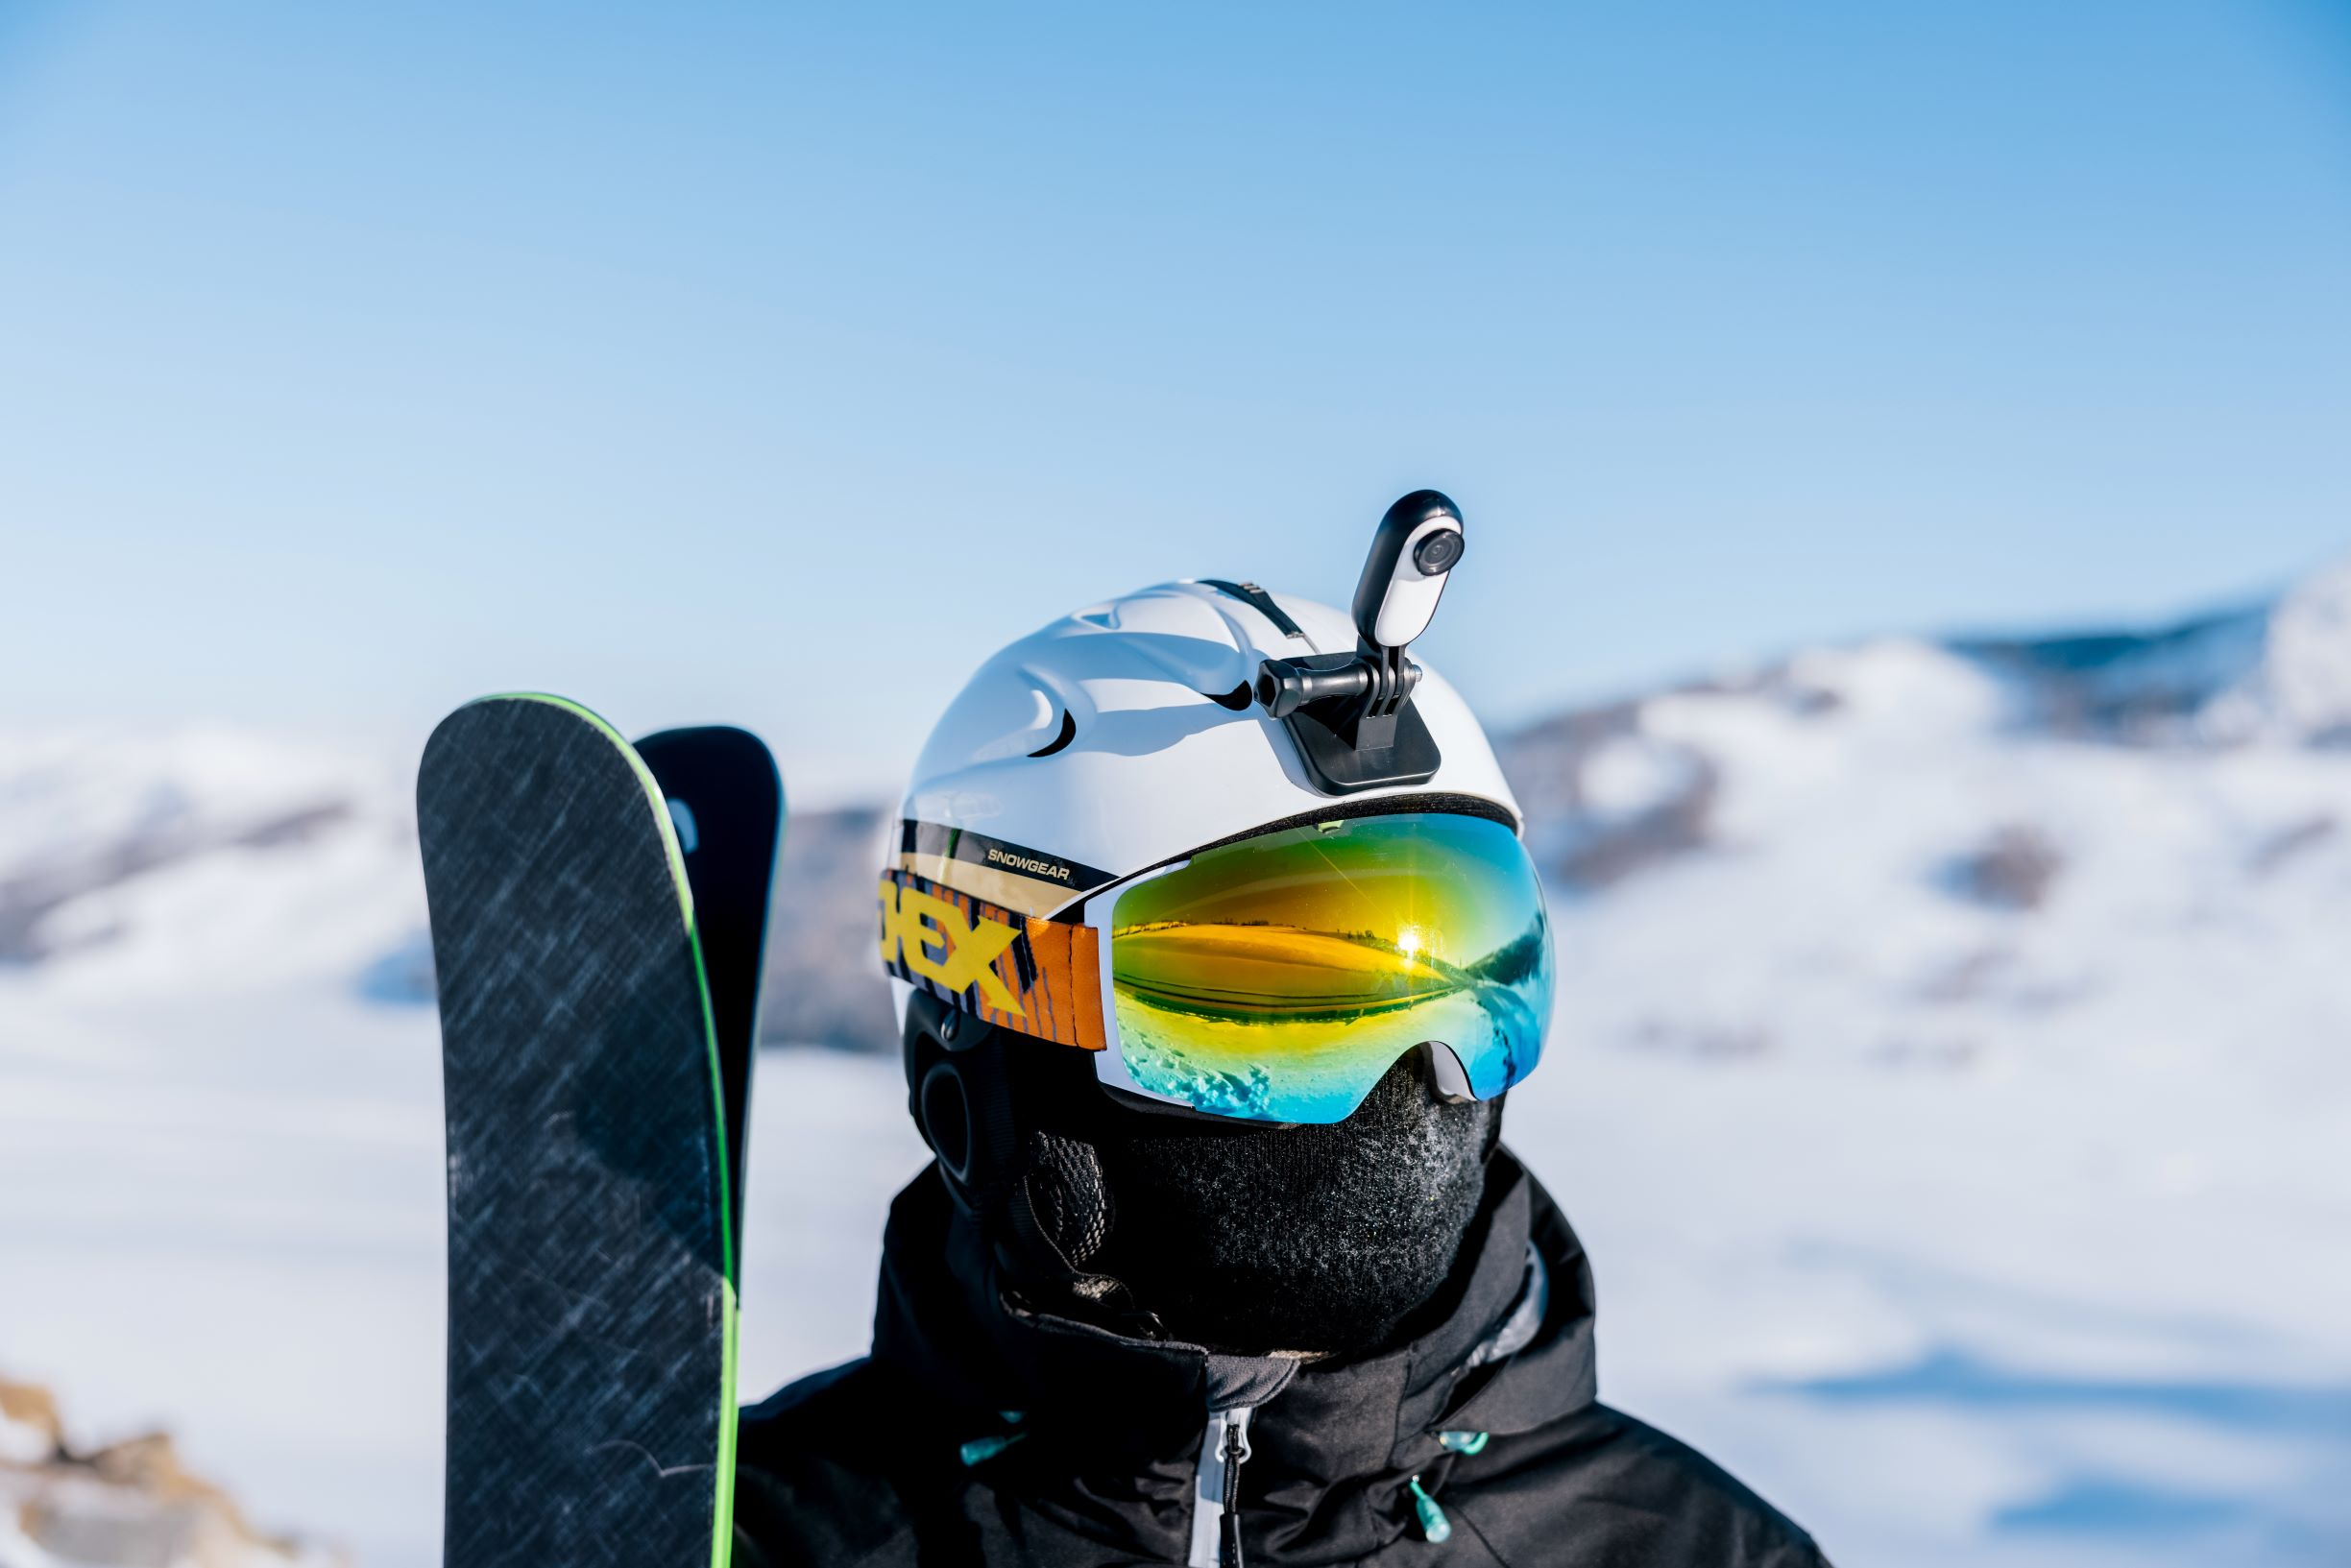 Insta360 GO 2 camera on a ski helmet